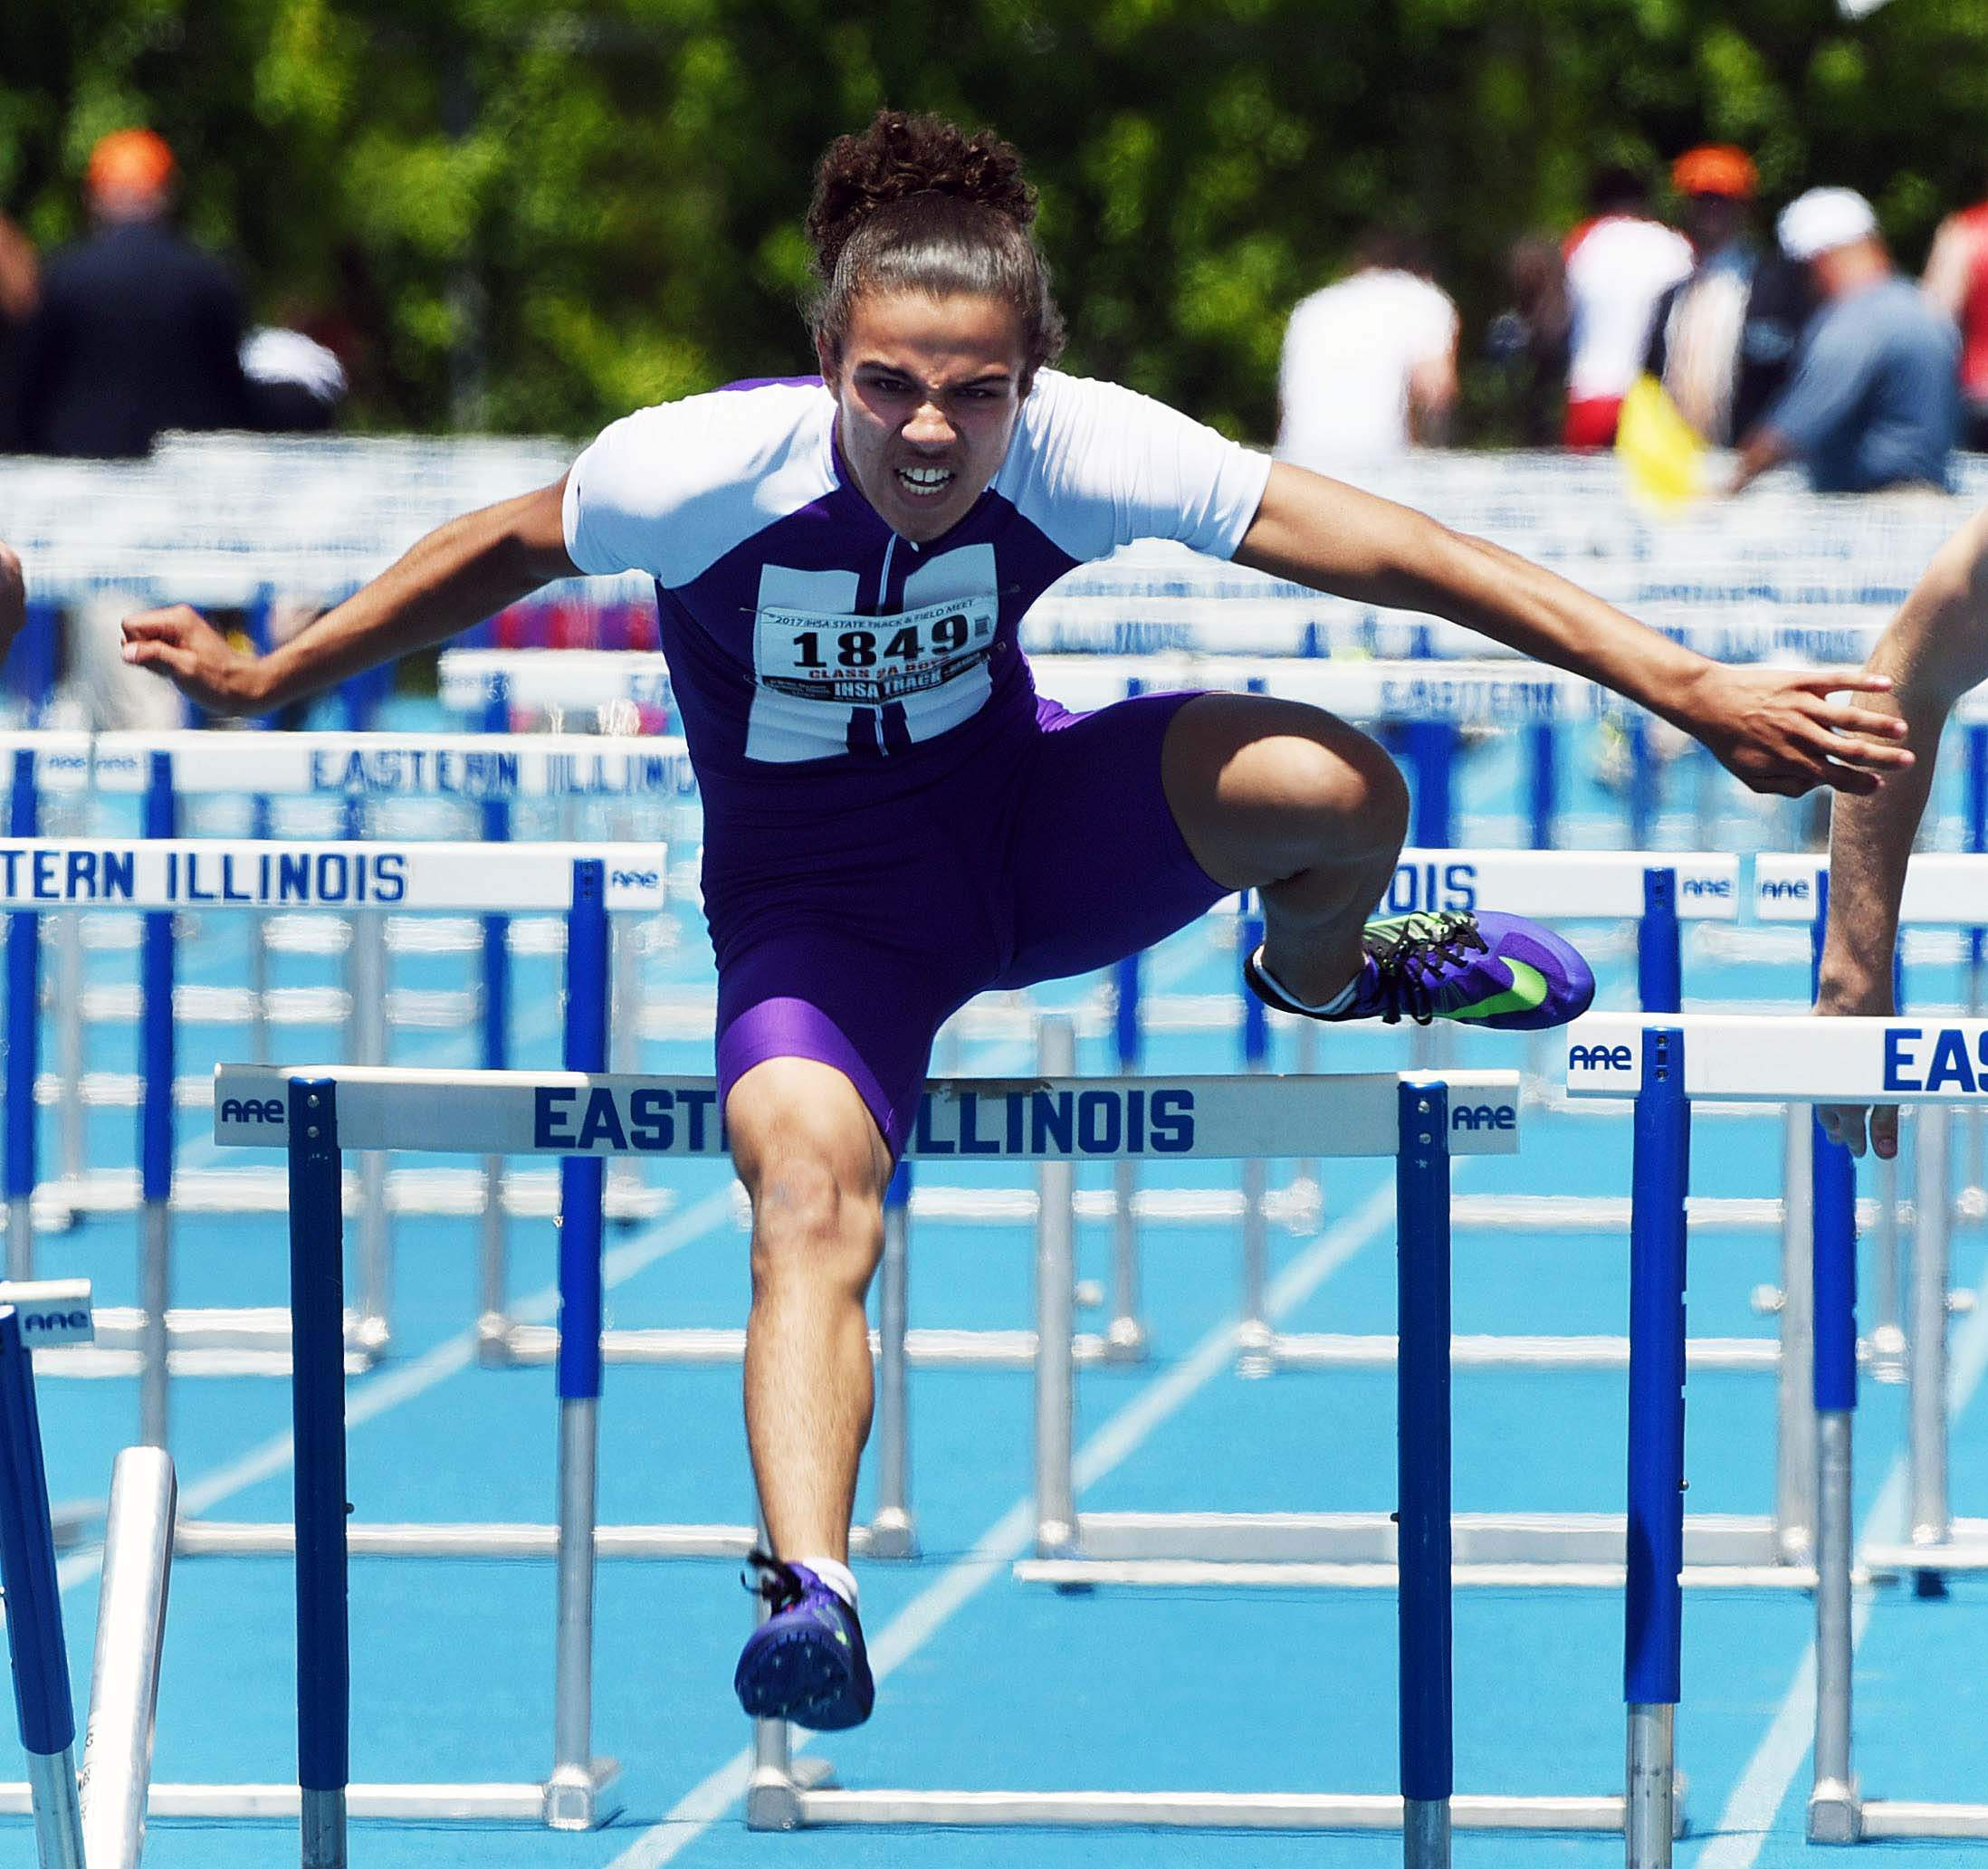 Harrisburg's Niko Neal clears the final hurdle during the class 2A 110-meter high hurdles during the boys state track and field finals at Eastern Illinois University in Charleston Saturday.